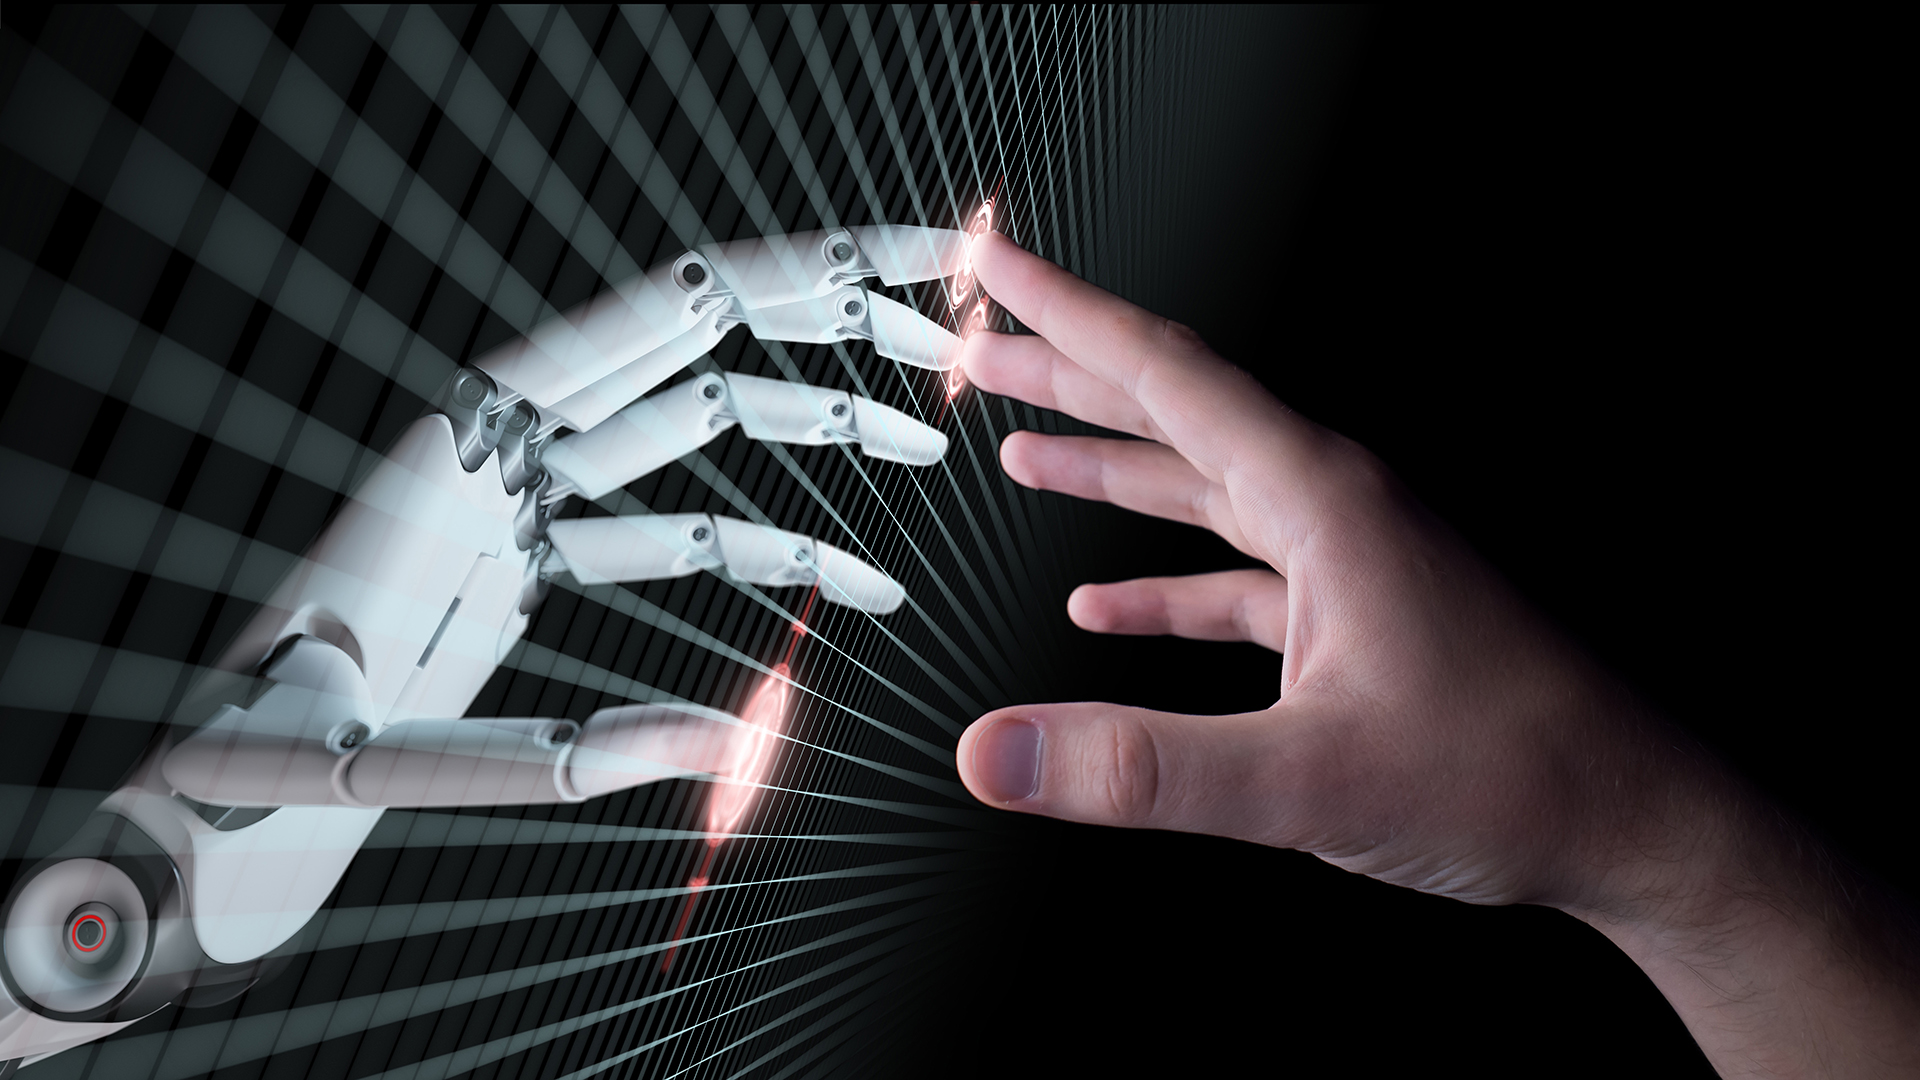 Outsourcing and artificial intelligence: Re-engineering outsourcing agreements